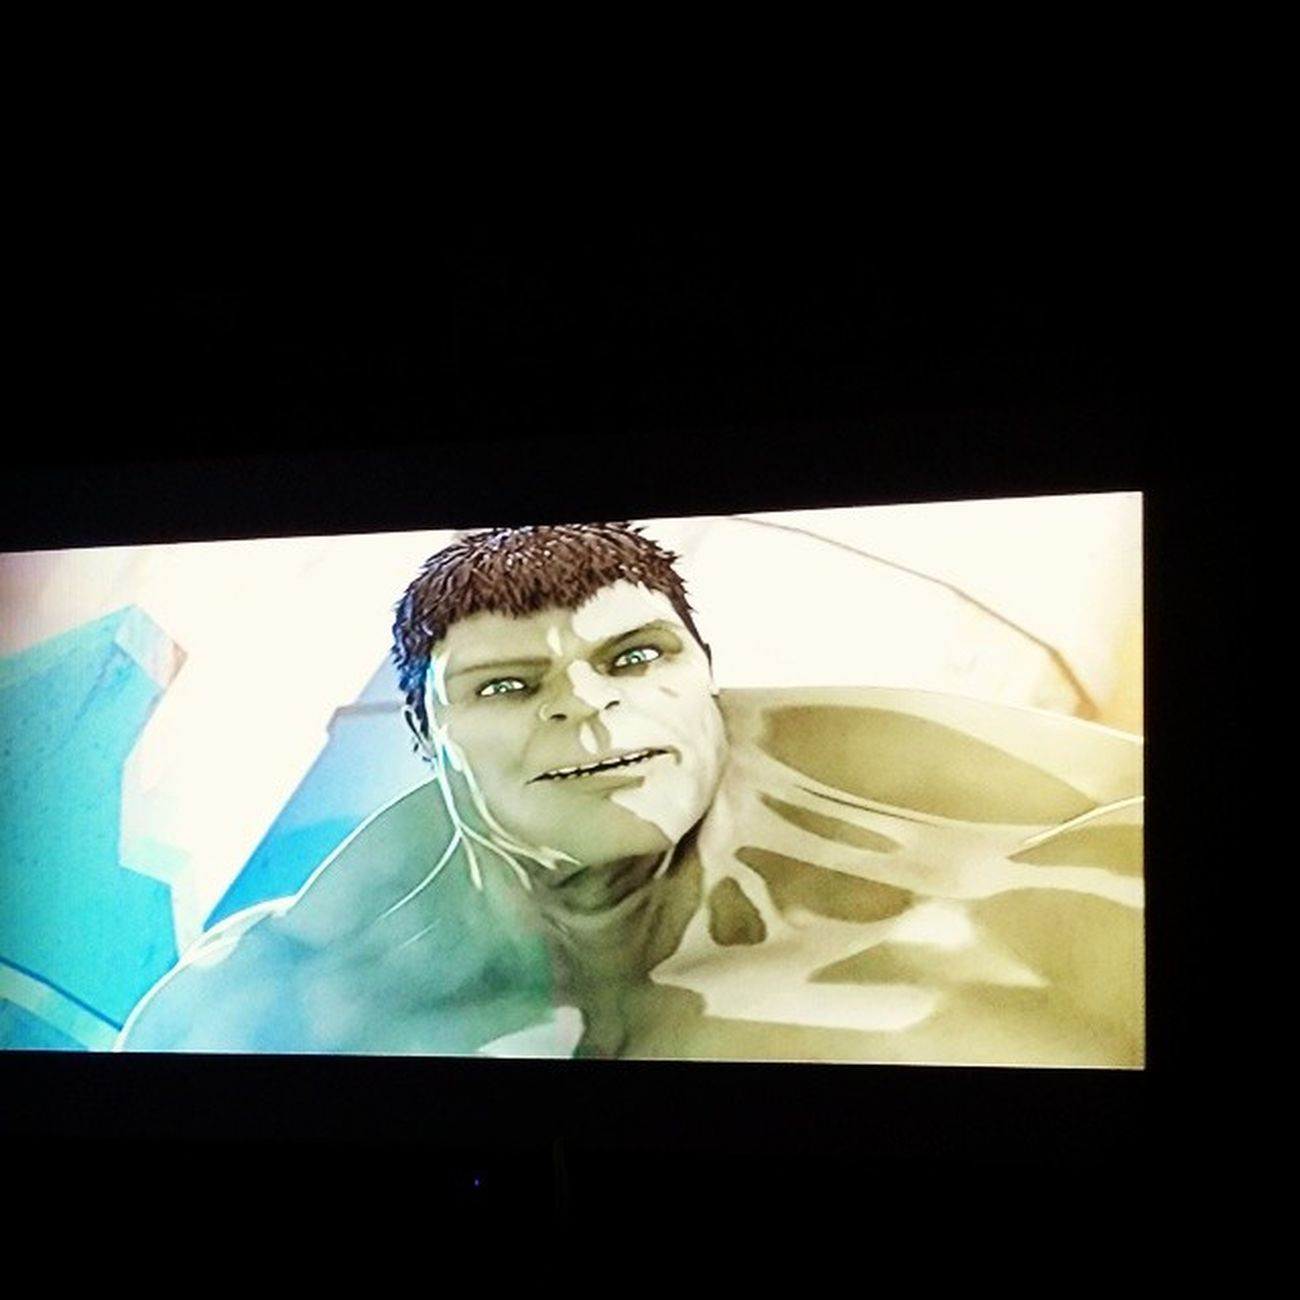 Watching a movie with Theincrediblehulk and Ironman on Netflix ....seems interesting...holla at yall later